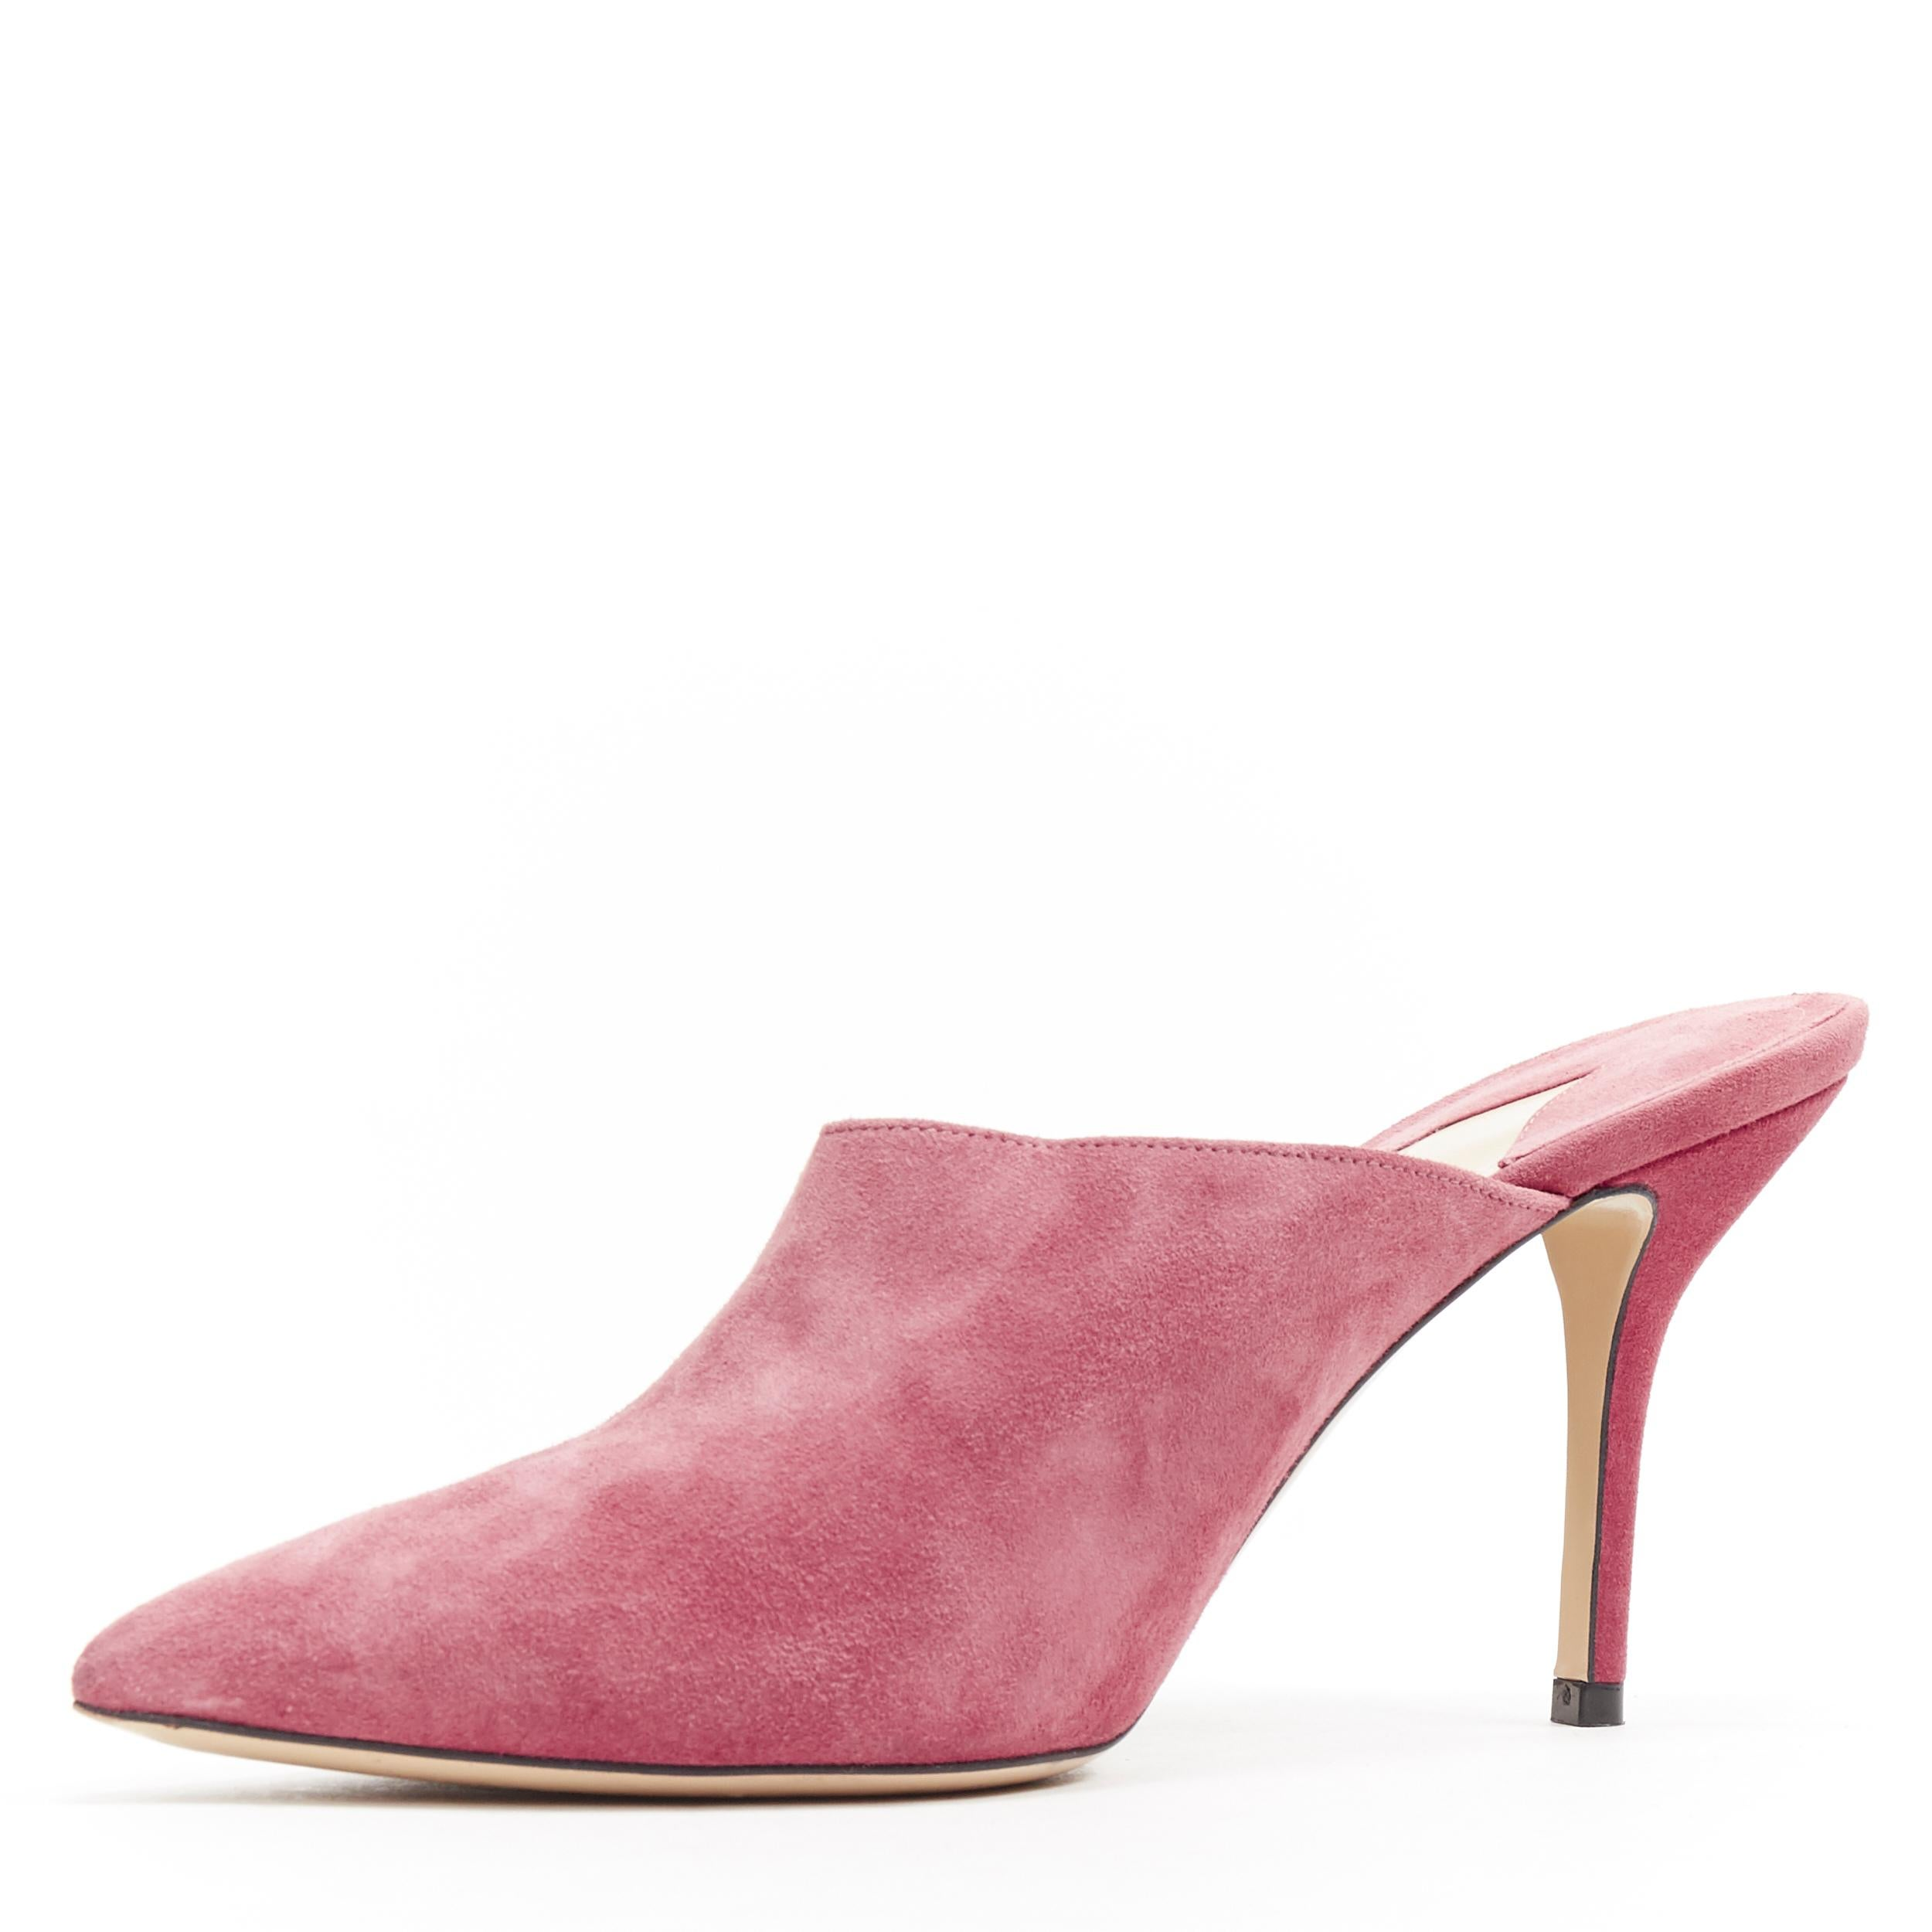 PAUL ANDREW blush pink suede leather